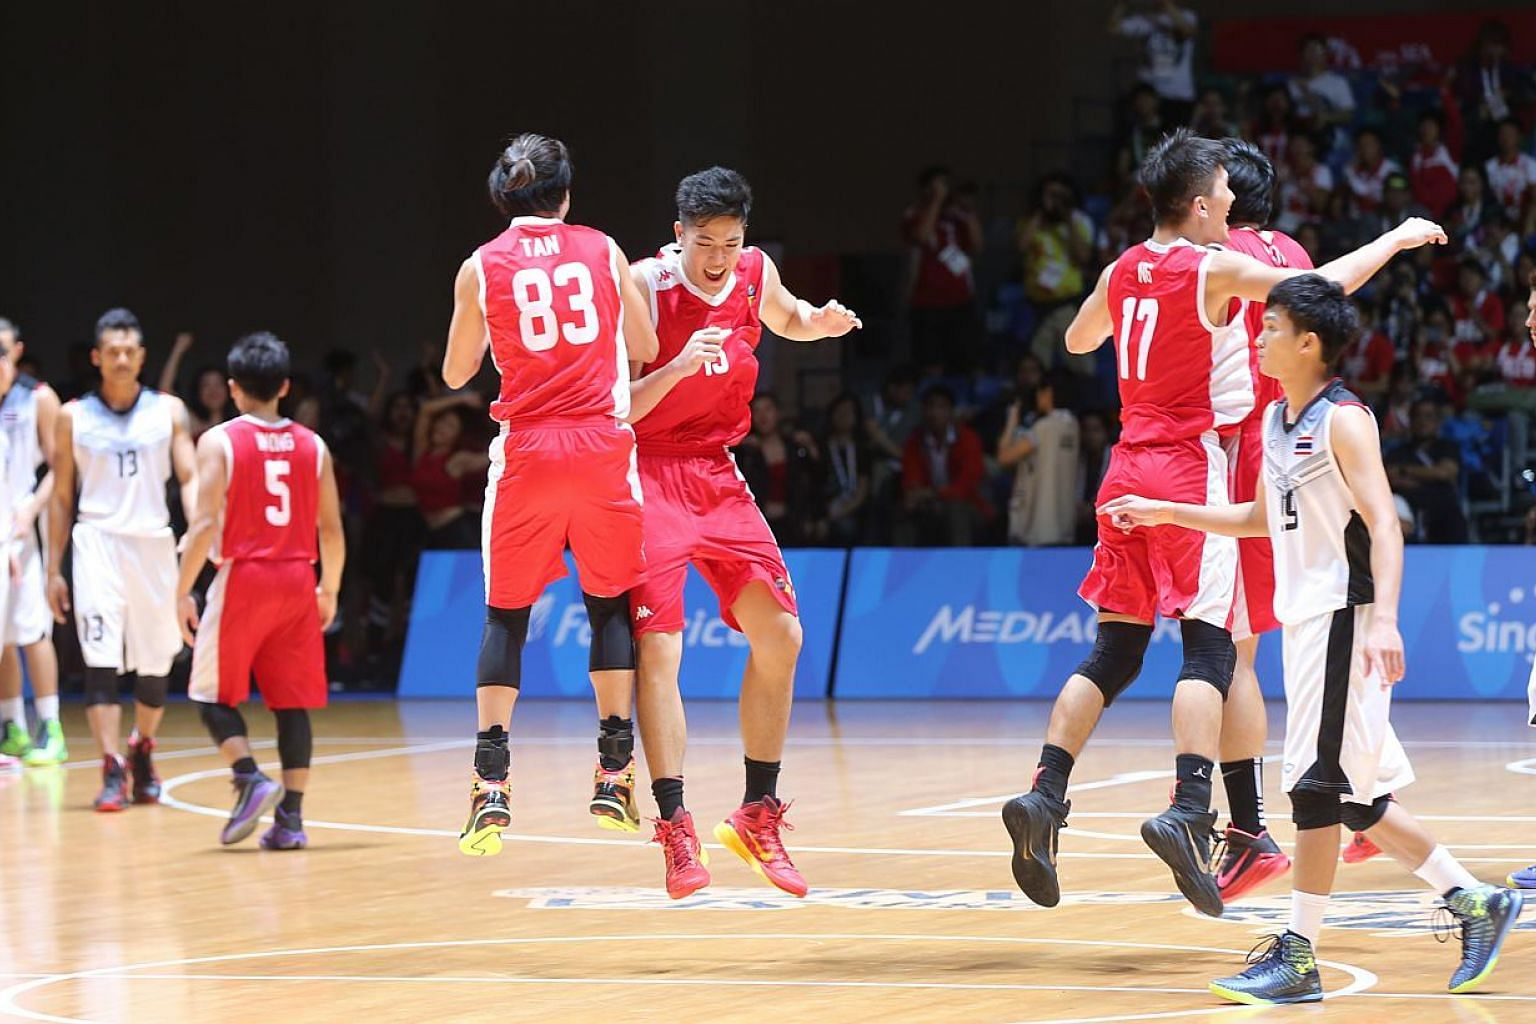 Singapore's male cagers edged out Thailand in a thrilling 54-49 win to clinch the bronze medal on June 15, 2015. -- ST PHOTO: ONG WEE JIN